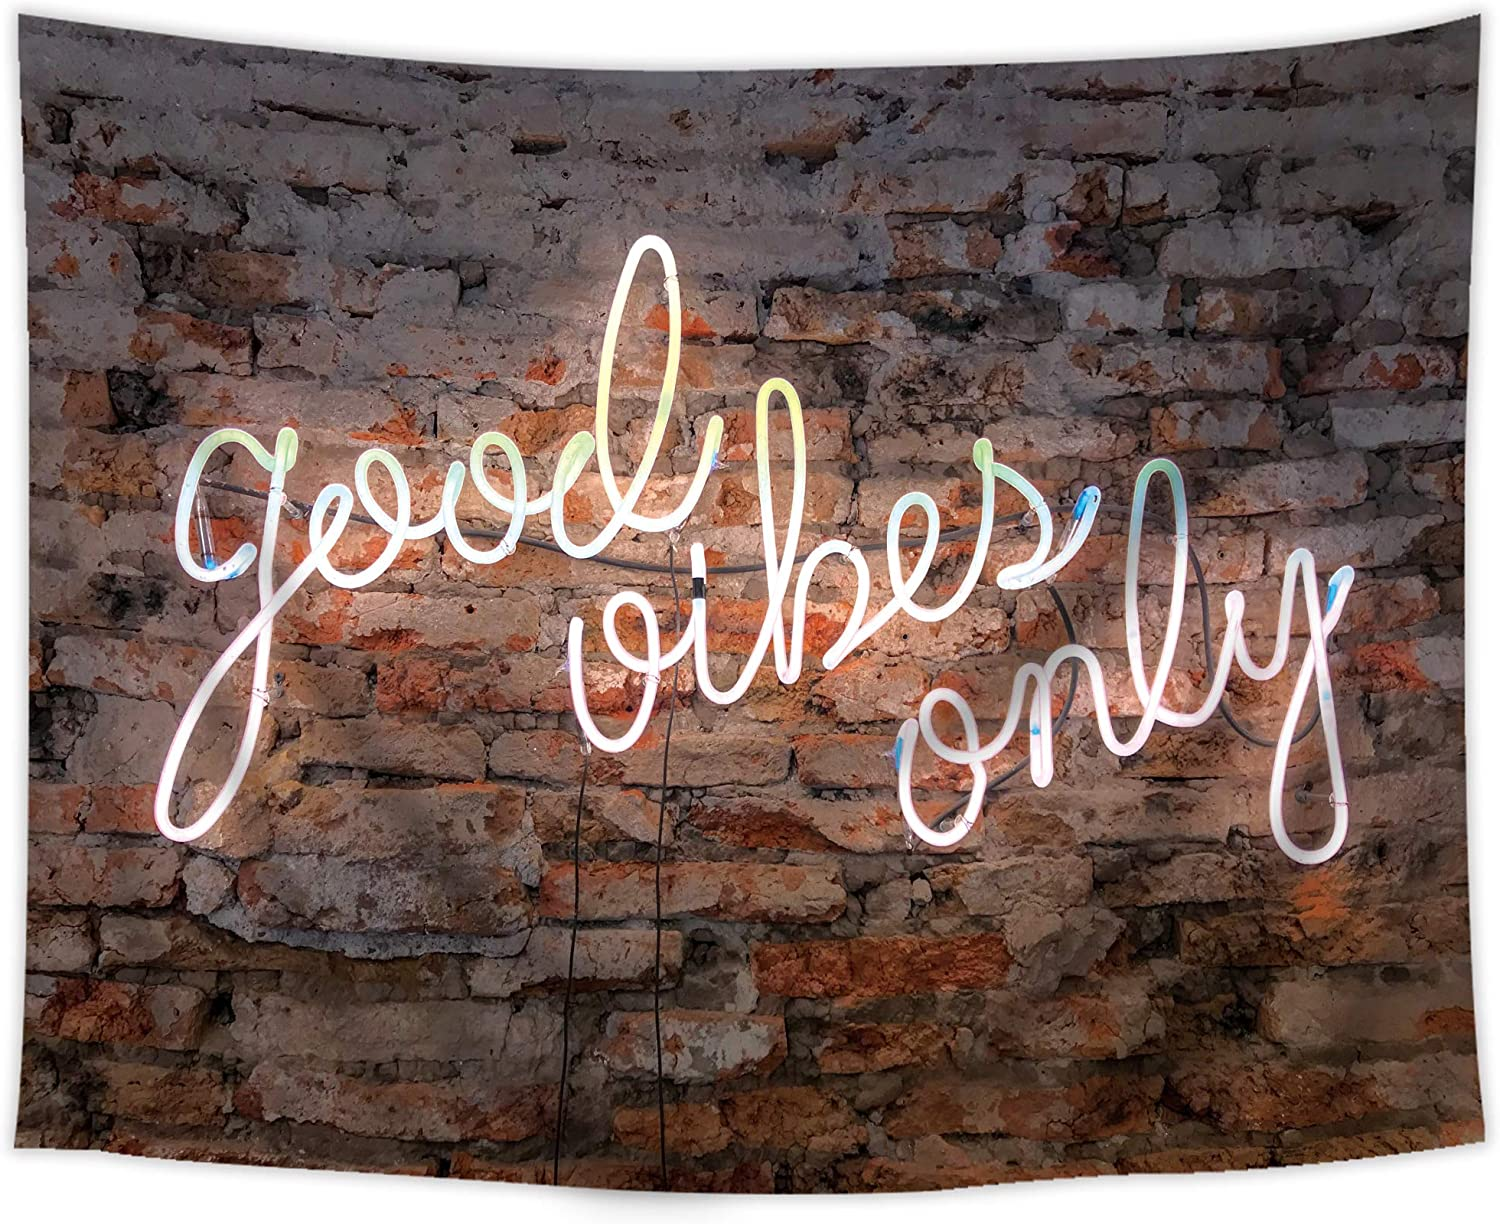 SVBright Neon Light Quote Good Vibes Only Tapestry 51Hx59W Inch Motivational Phrase on Decorative Brick Wall Red White Hanging Bedroom Living Room Dorm Decor Fabric